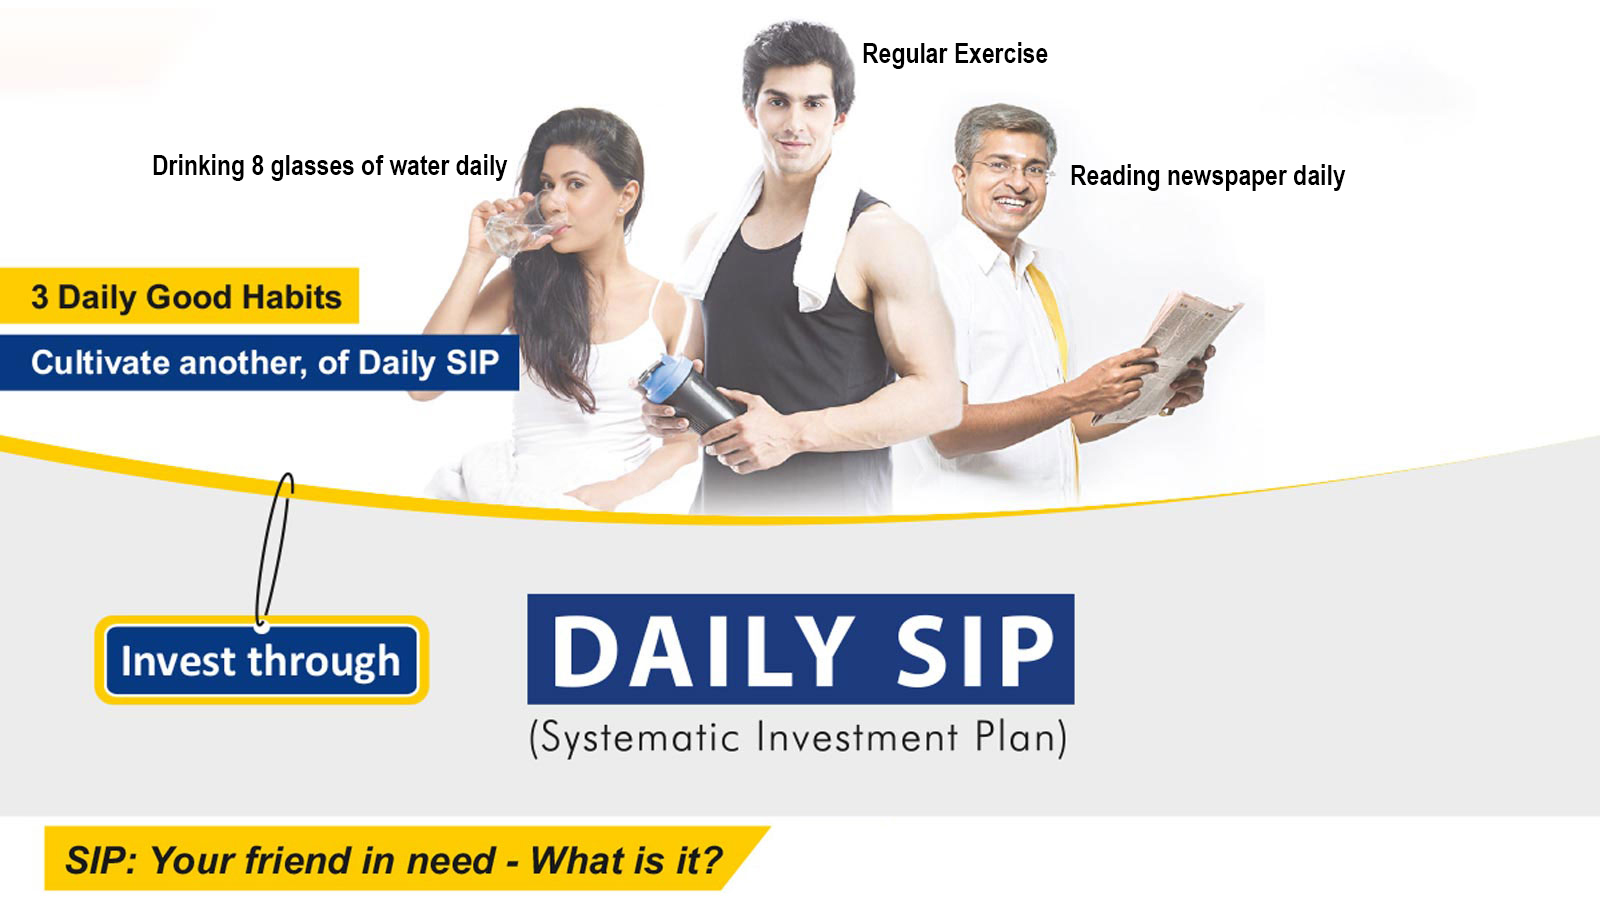 What Is Daily SIP